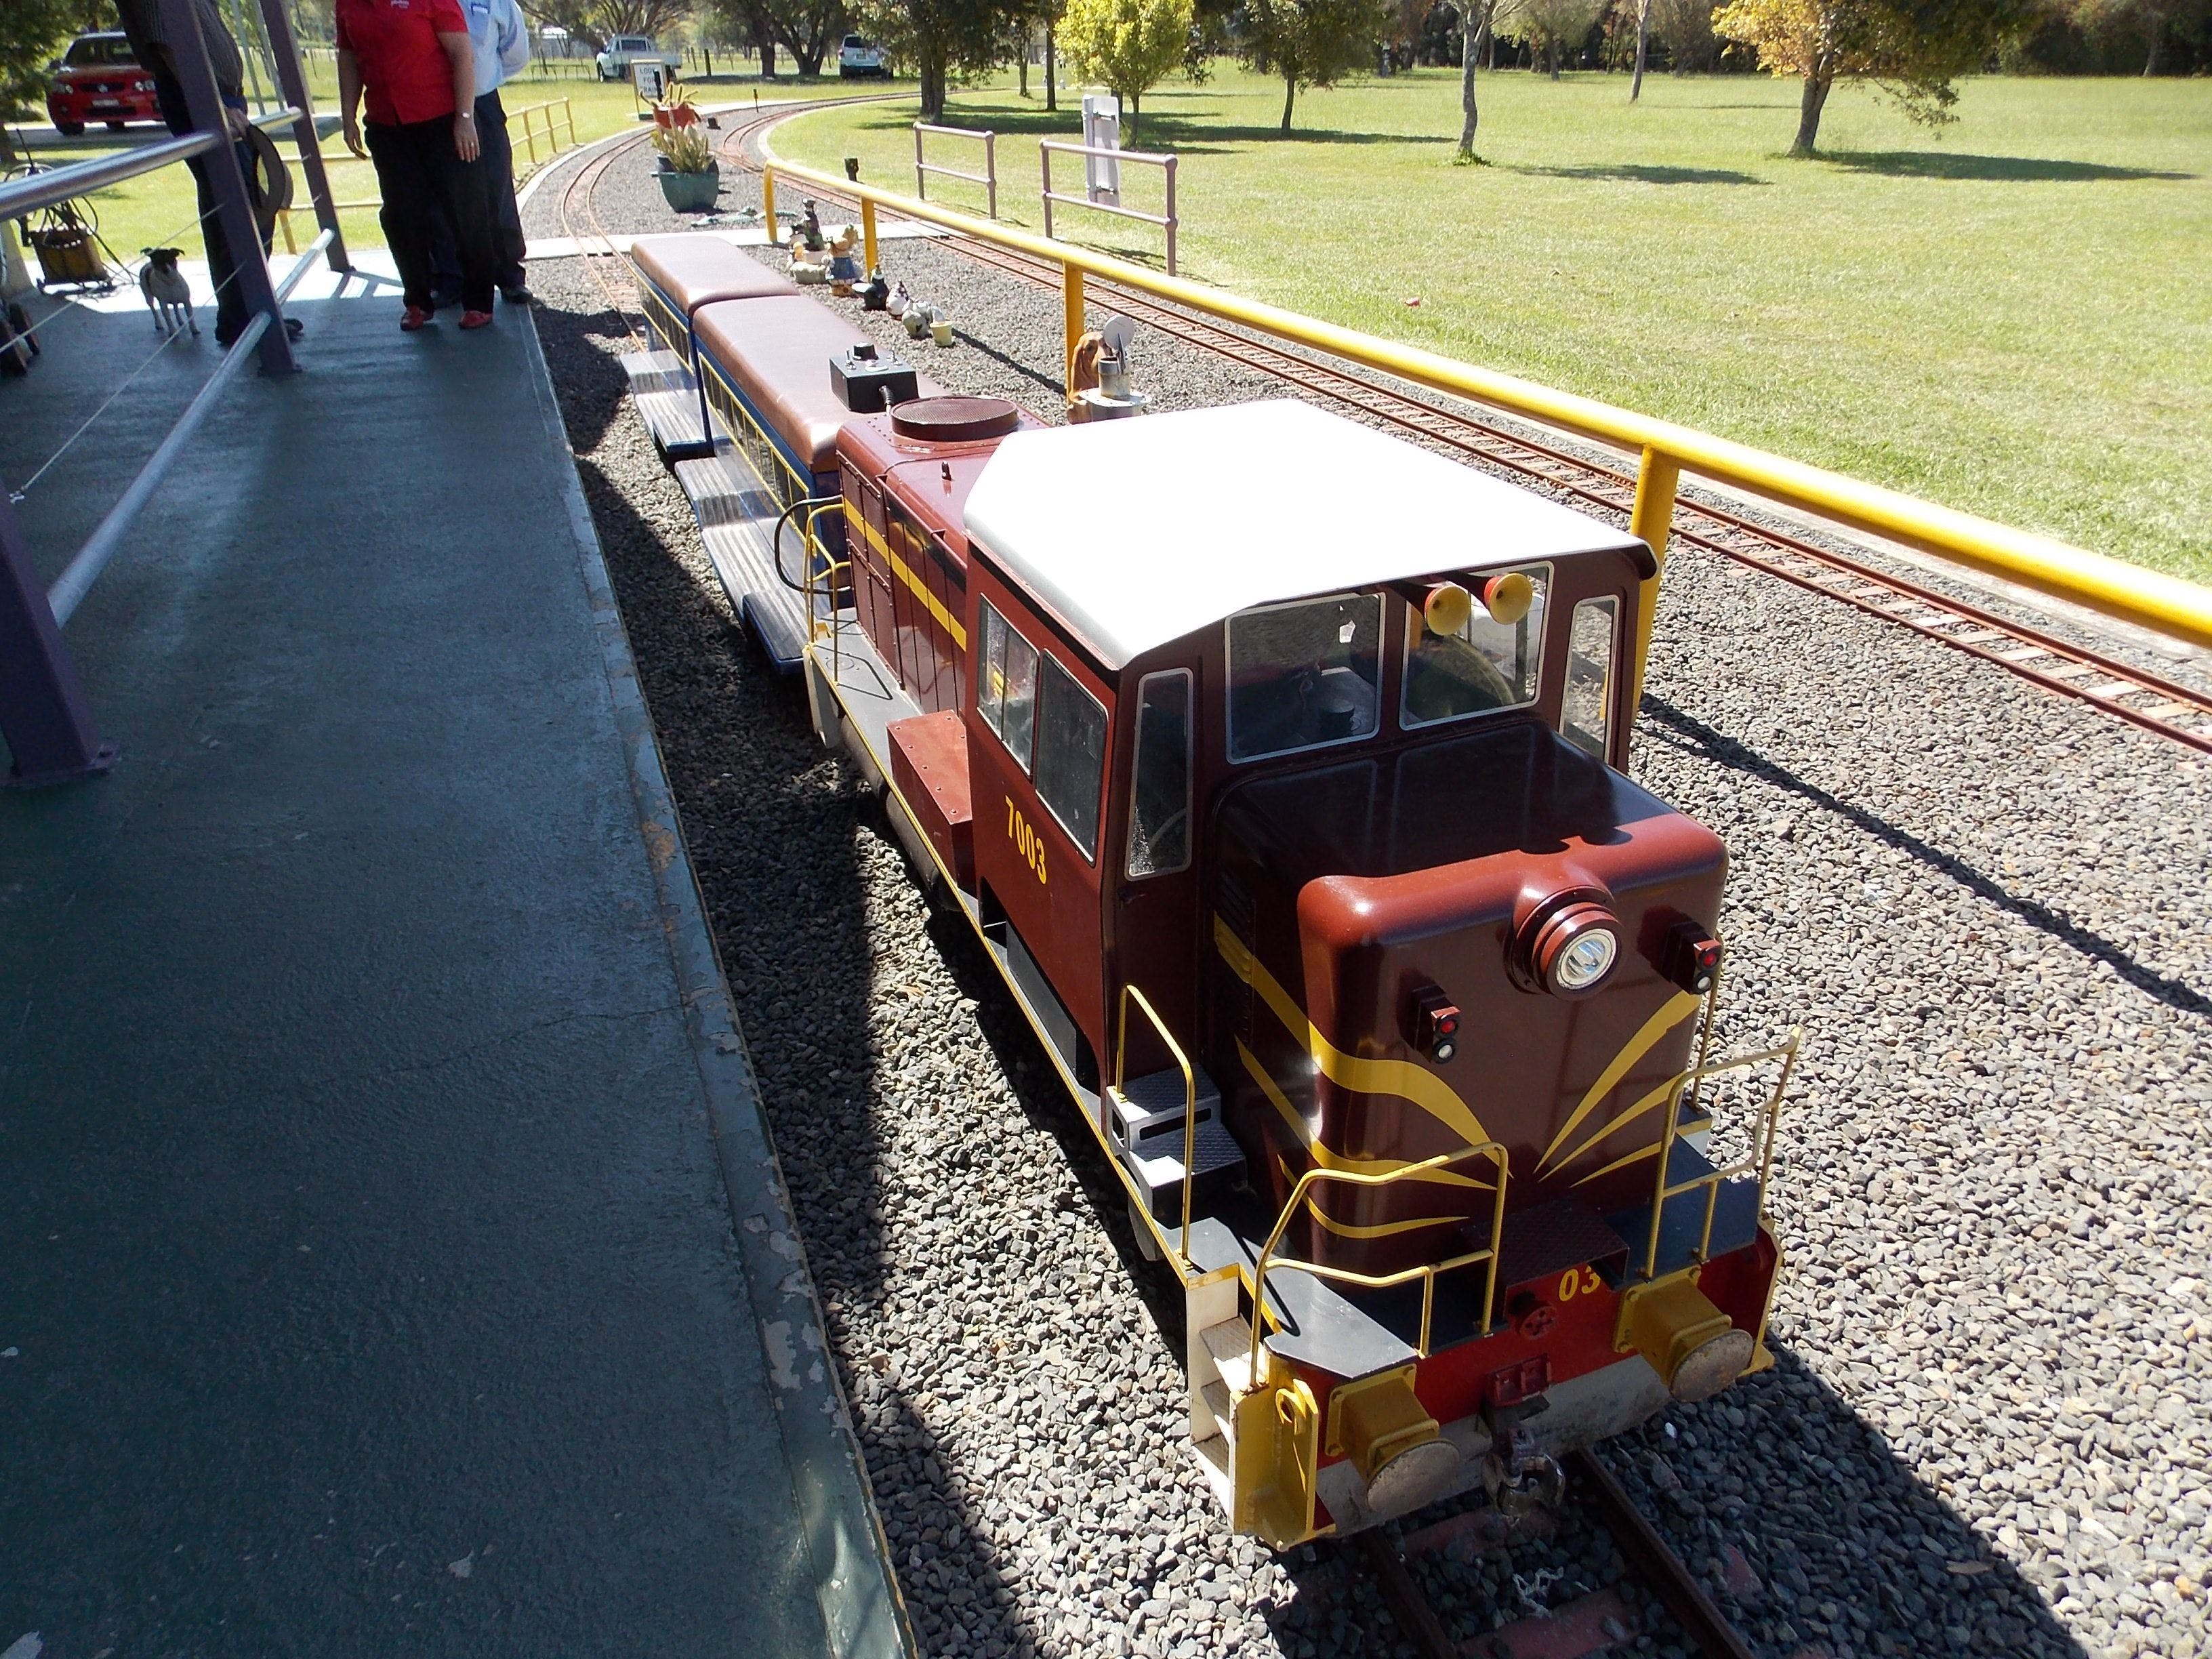 Penwood Miniature Railway - Attractions Perth